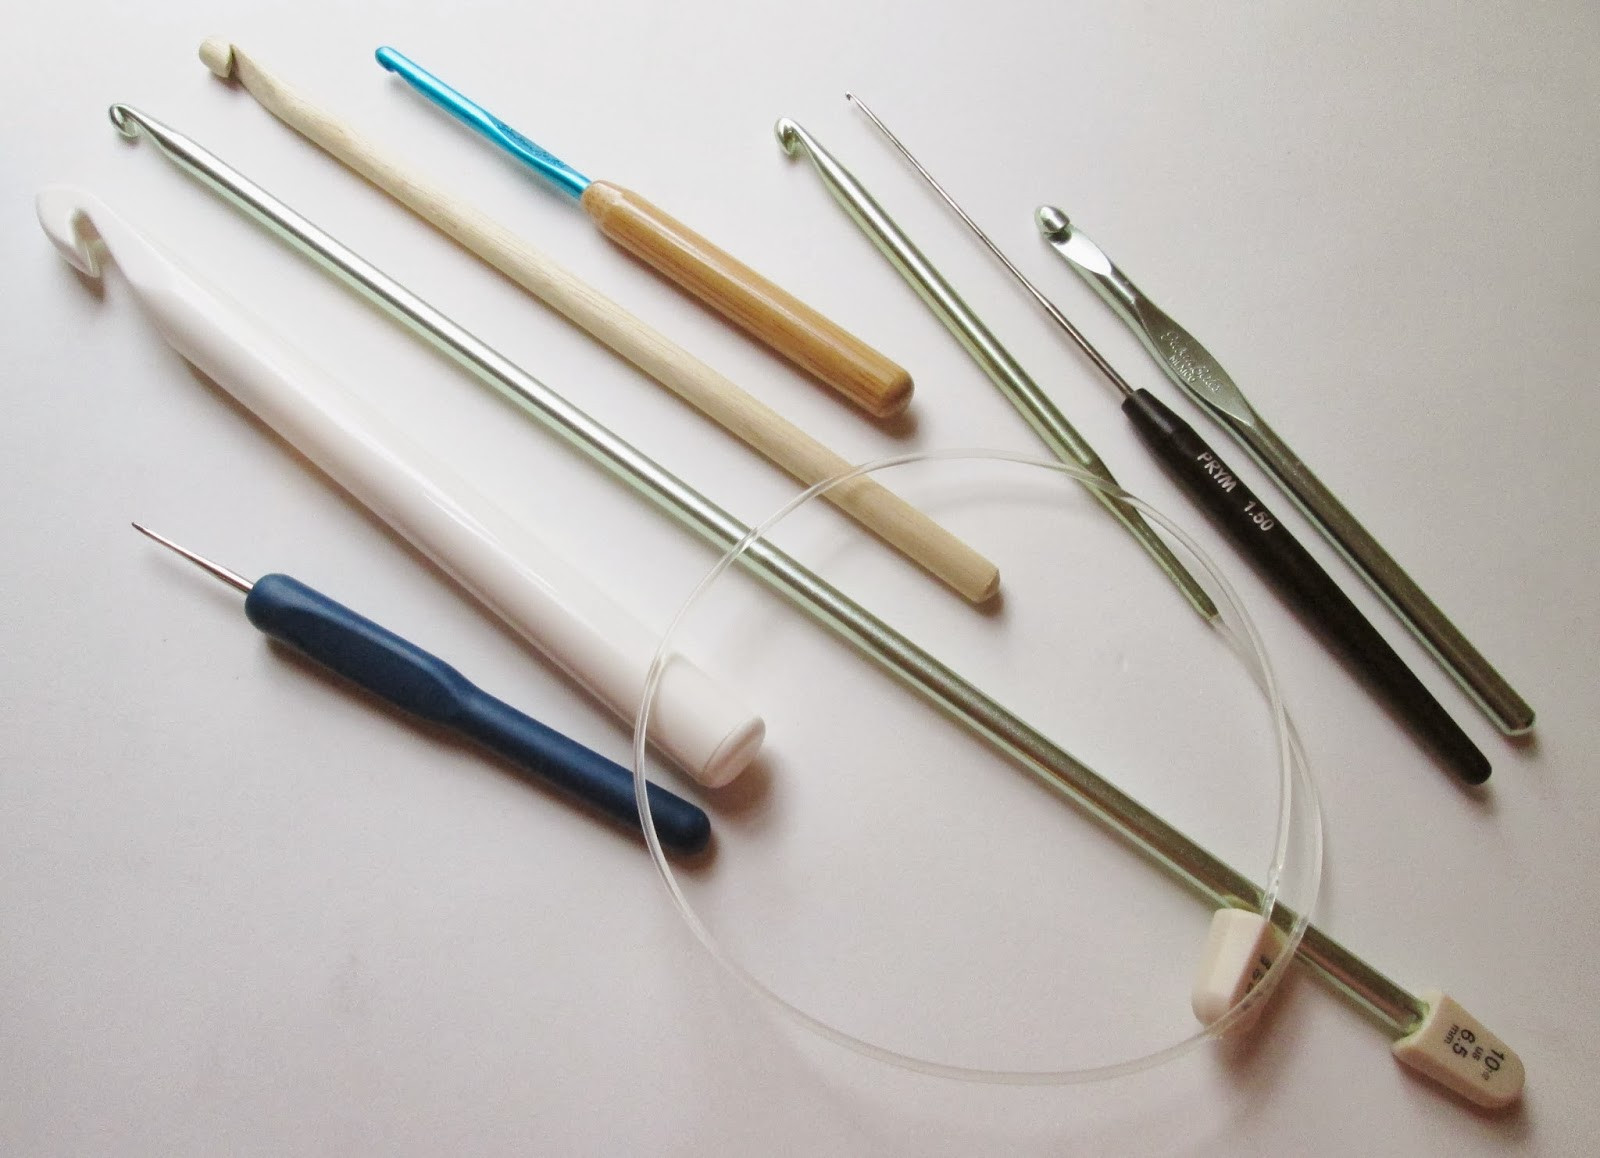 Gypsy Daughter Essays A Brief Introduction to Crochet Hooks